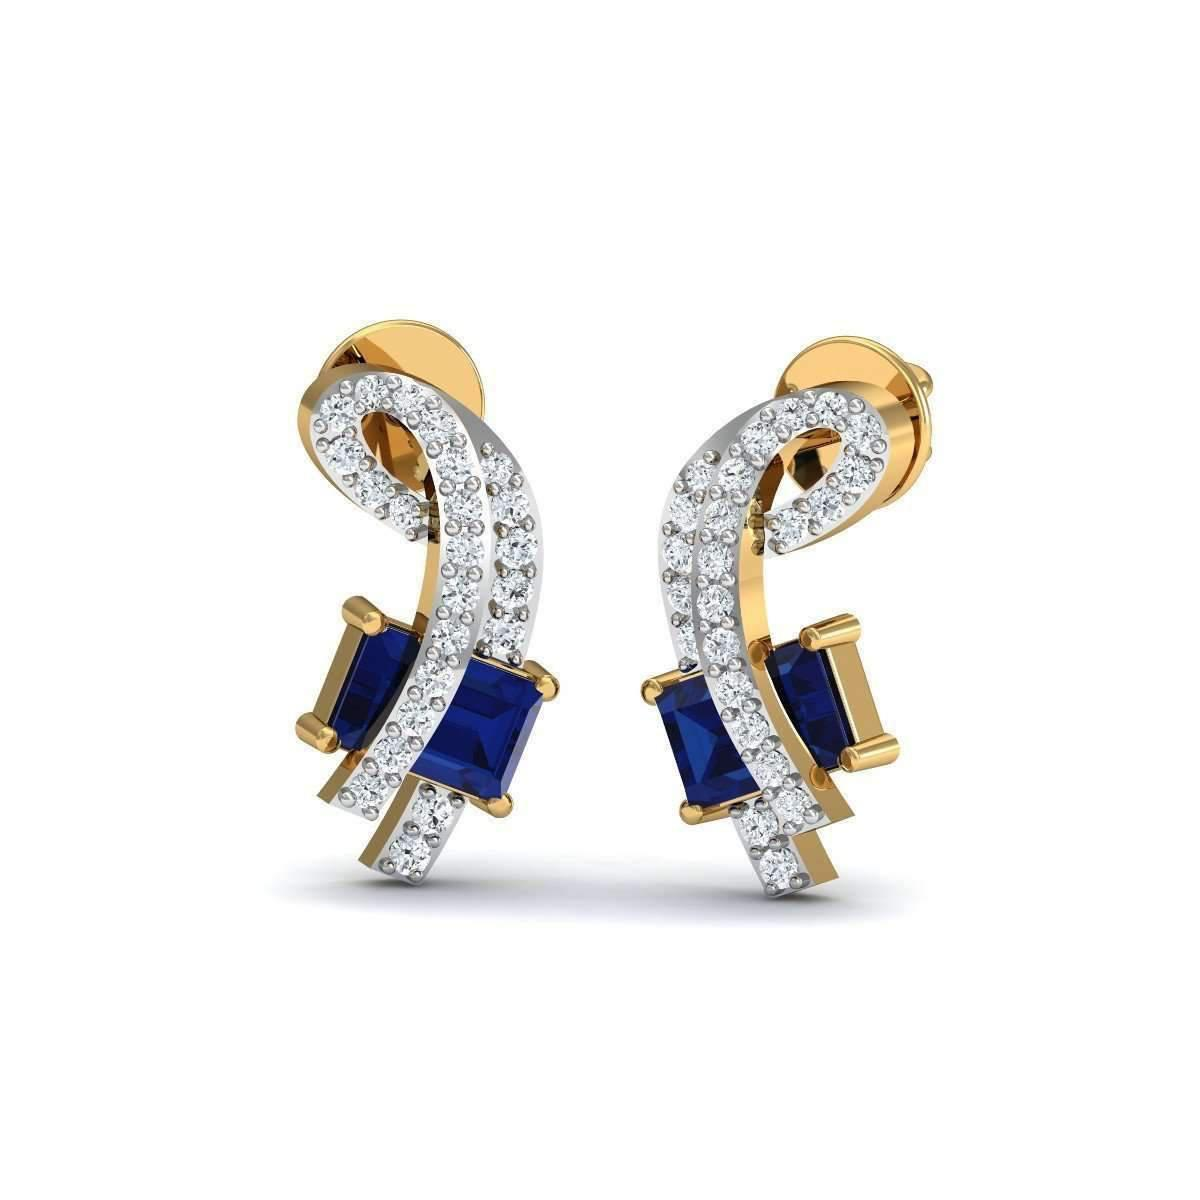 Diamoire Jewels Prong Set Blue Sapphire and Diamond Earrings in 14kt Yellow Gold GthQDW